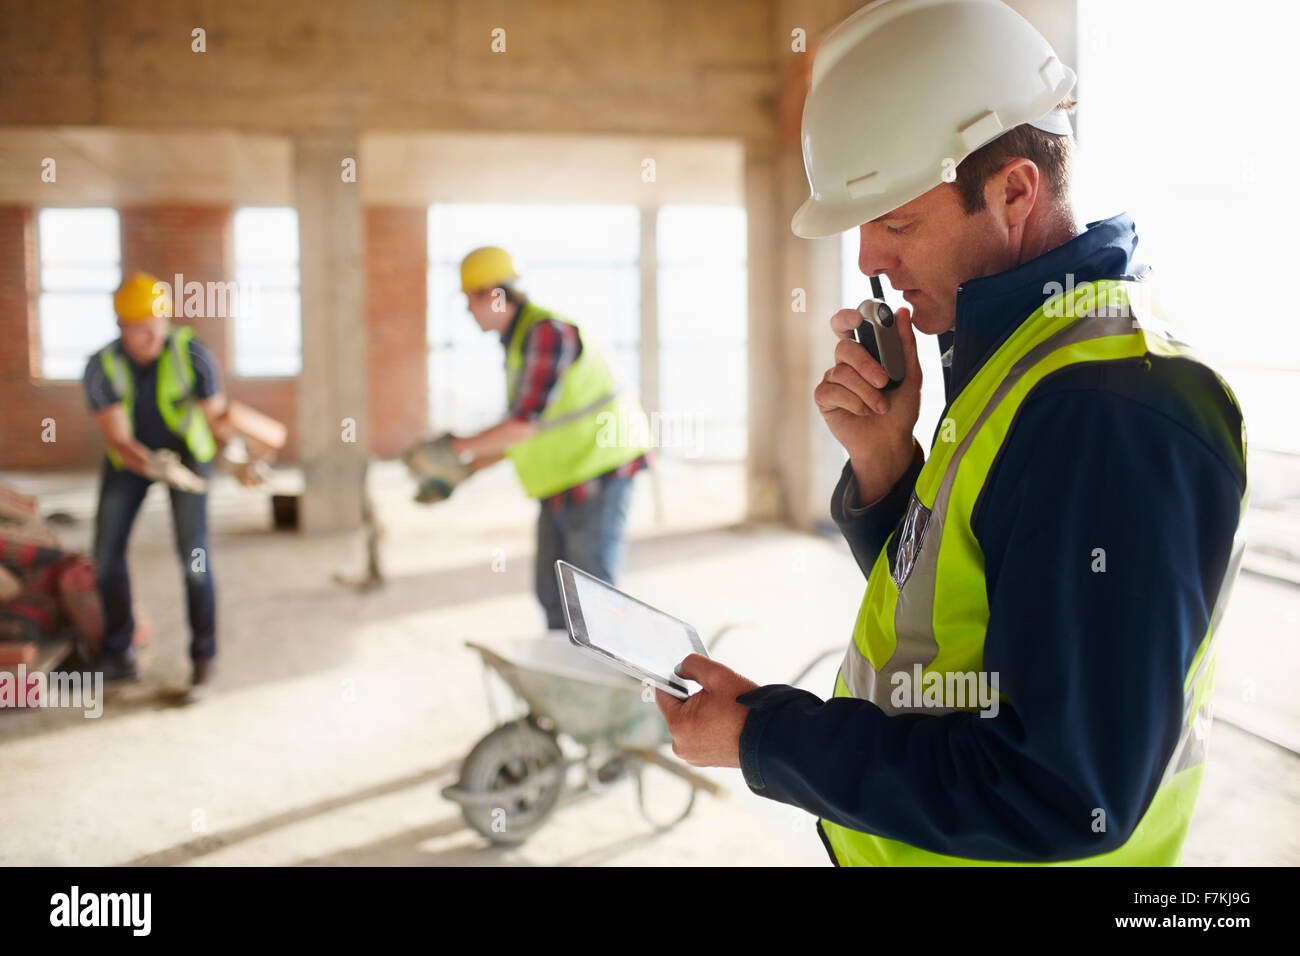 Foreman with digital tablet using walkie-talkie at construction site - Stock Image